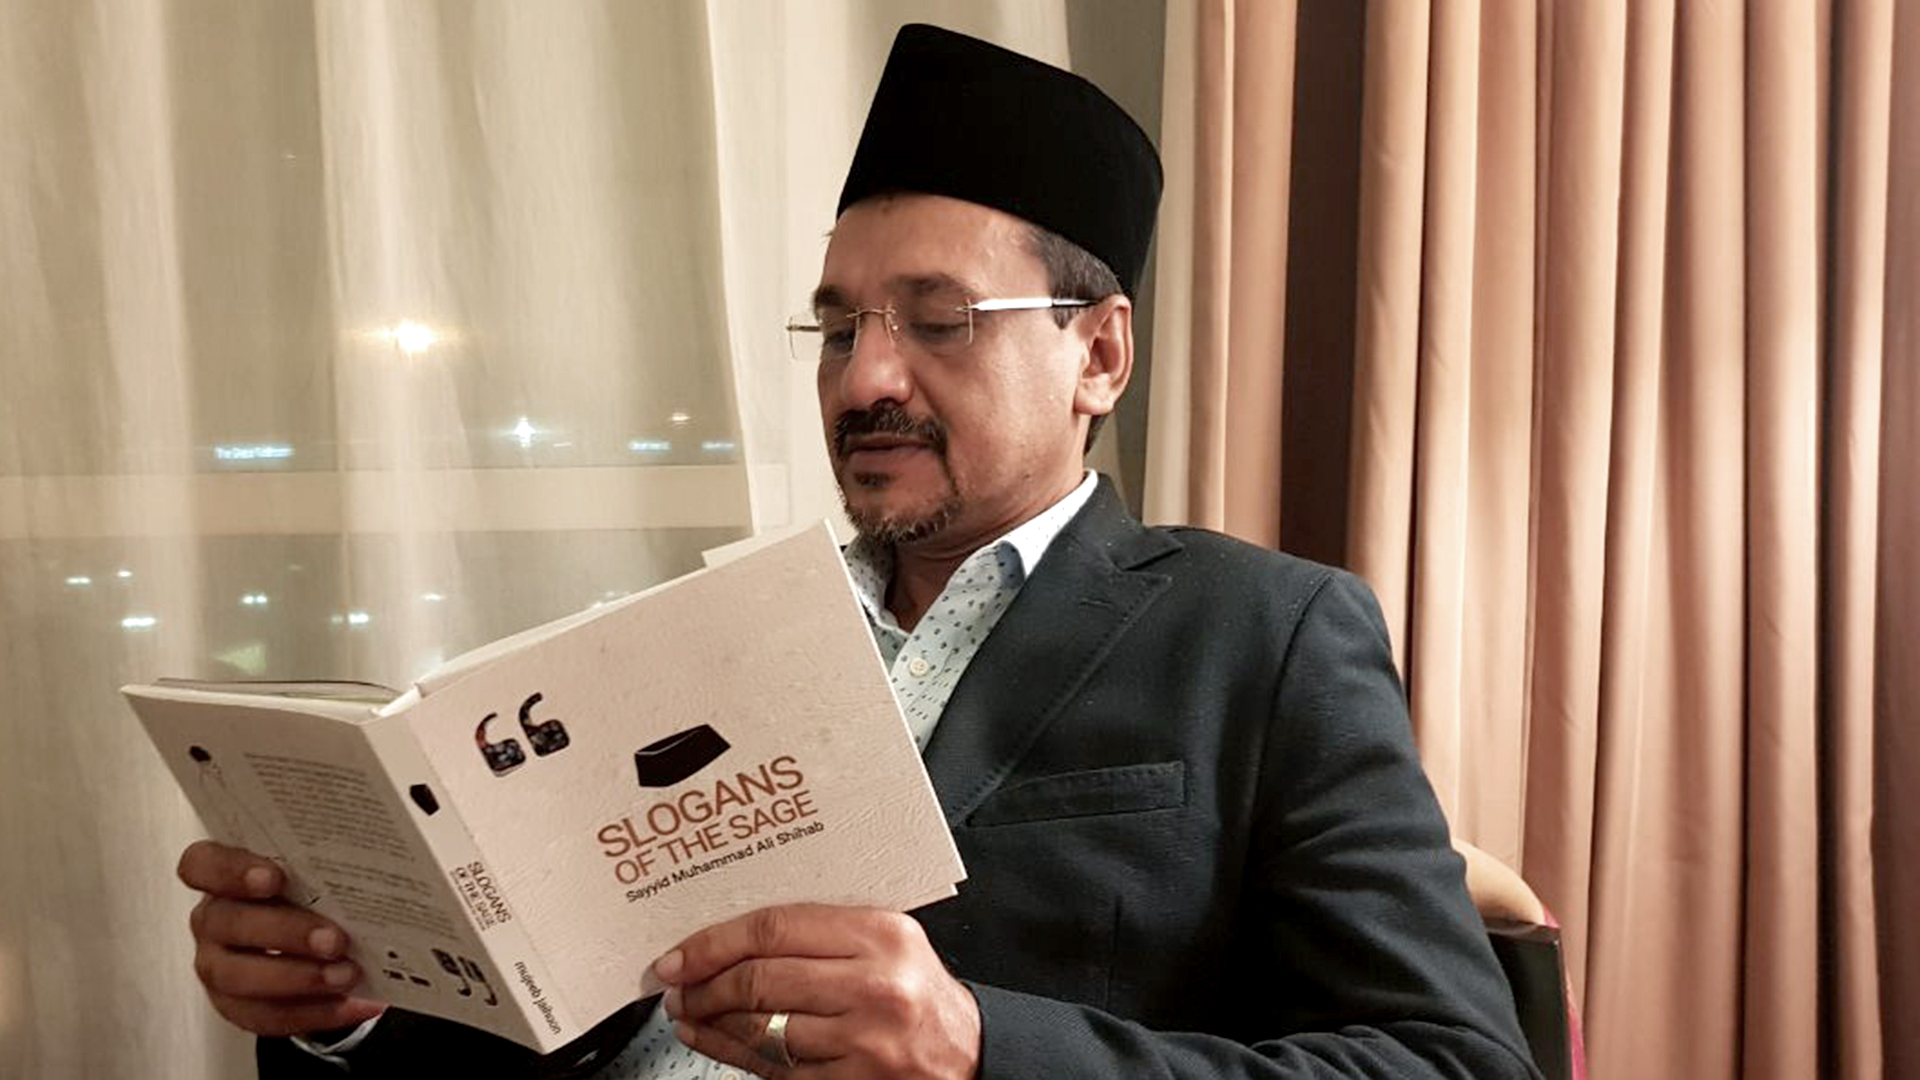 Panakkad Sayyid Sadik Ali Shihab Thangal, brother of Sayyid Shihab, absorbed in reading Slogans of the Sage by Mujeeb Jaihoon